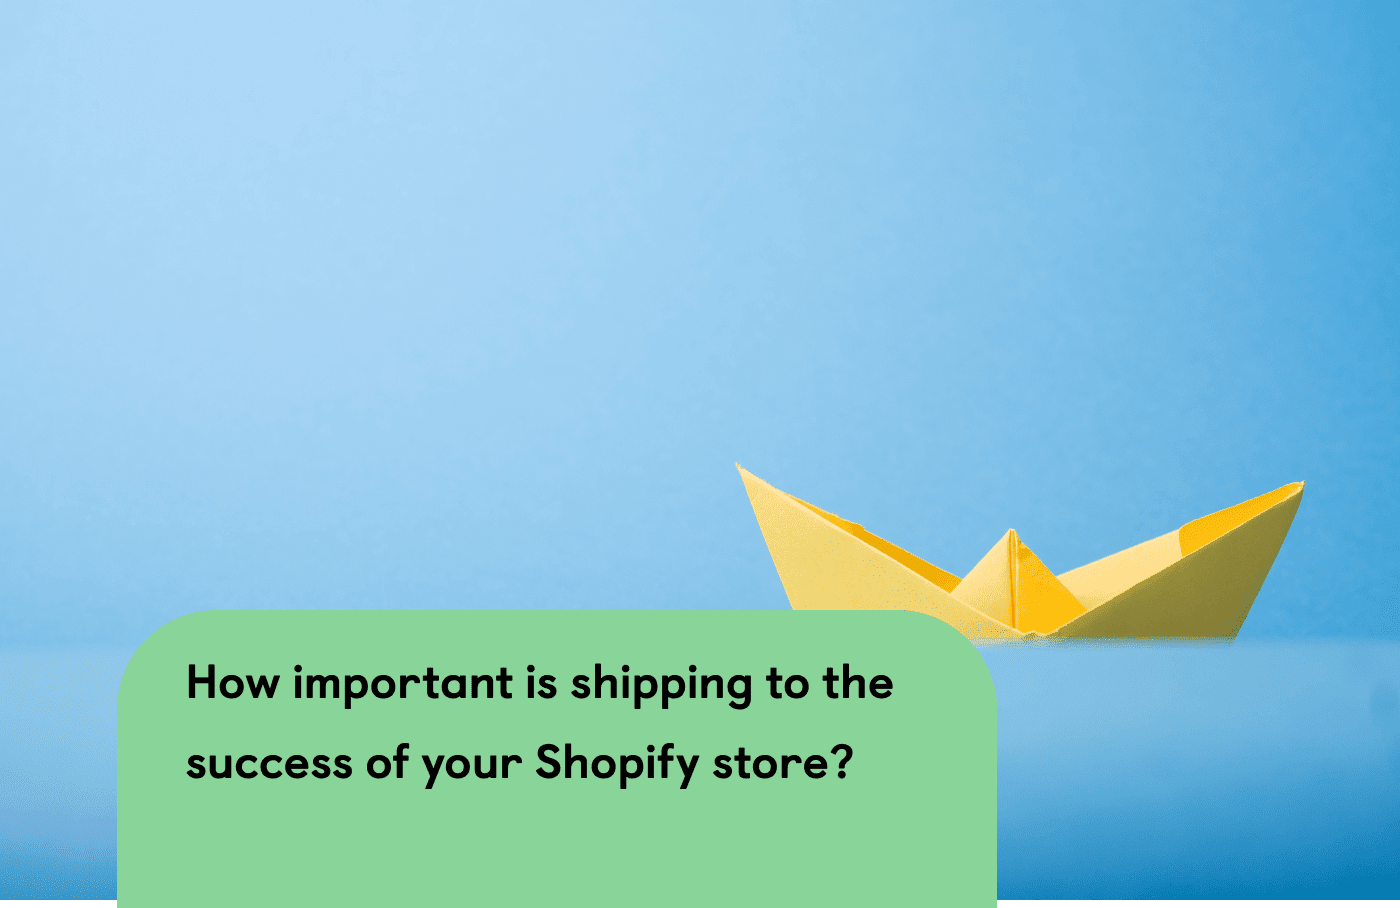 How important is your shipping to the success of your business?